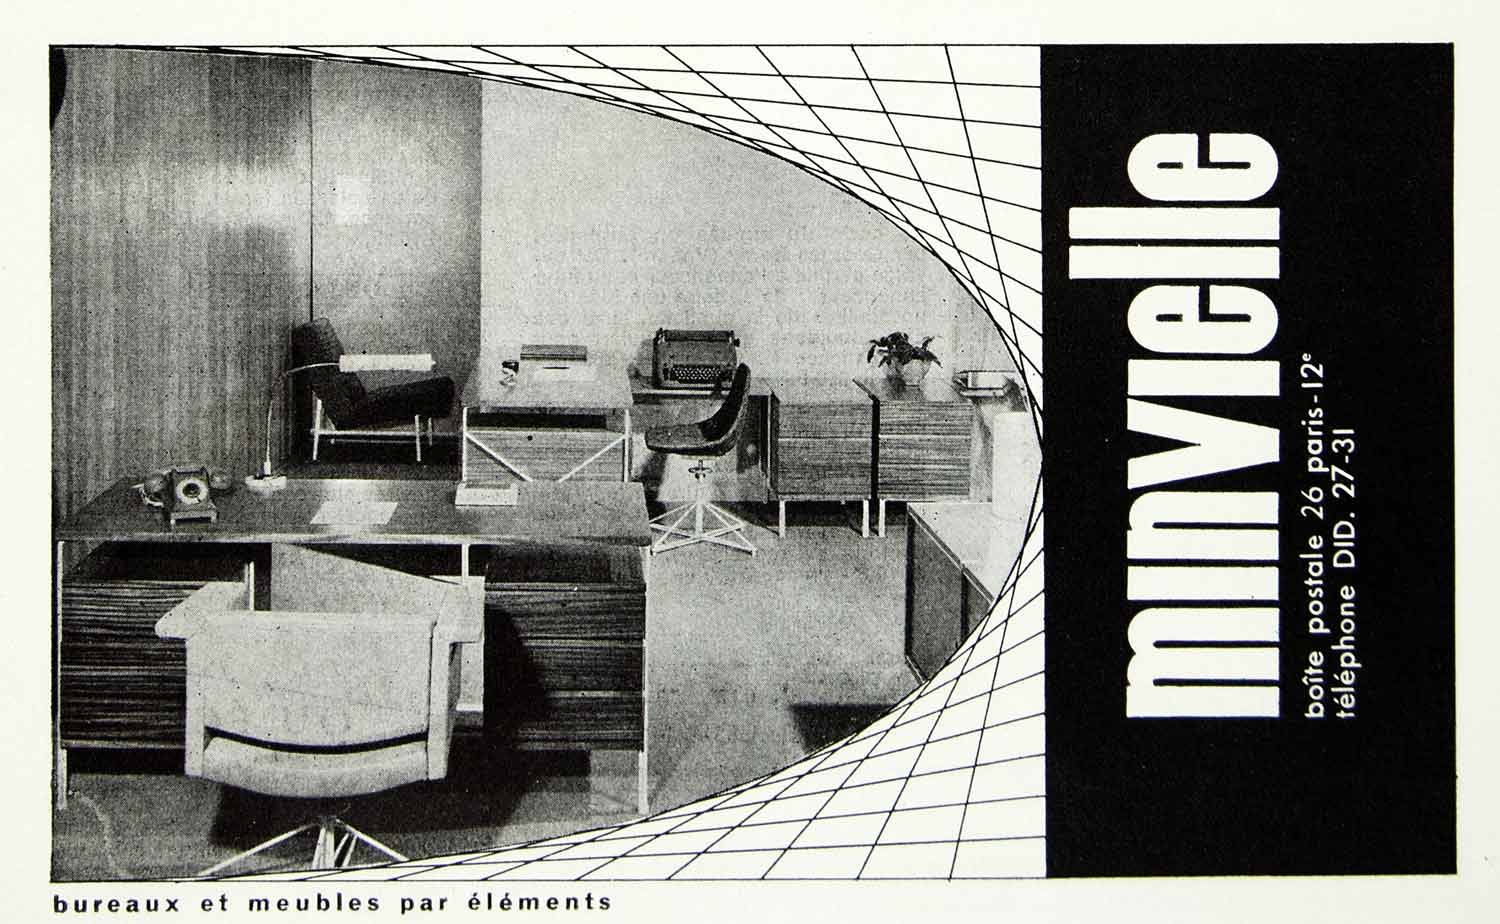 1957 Ad Minvielle Desks Office Furniture Fifties Retro Chair Interior VEN1